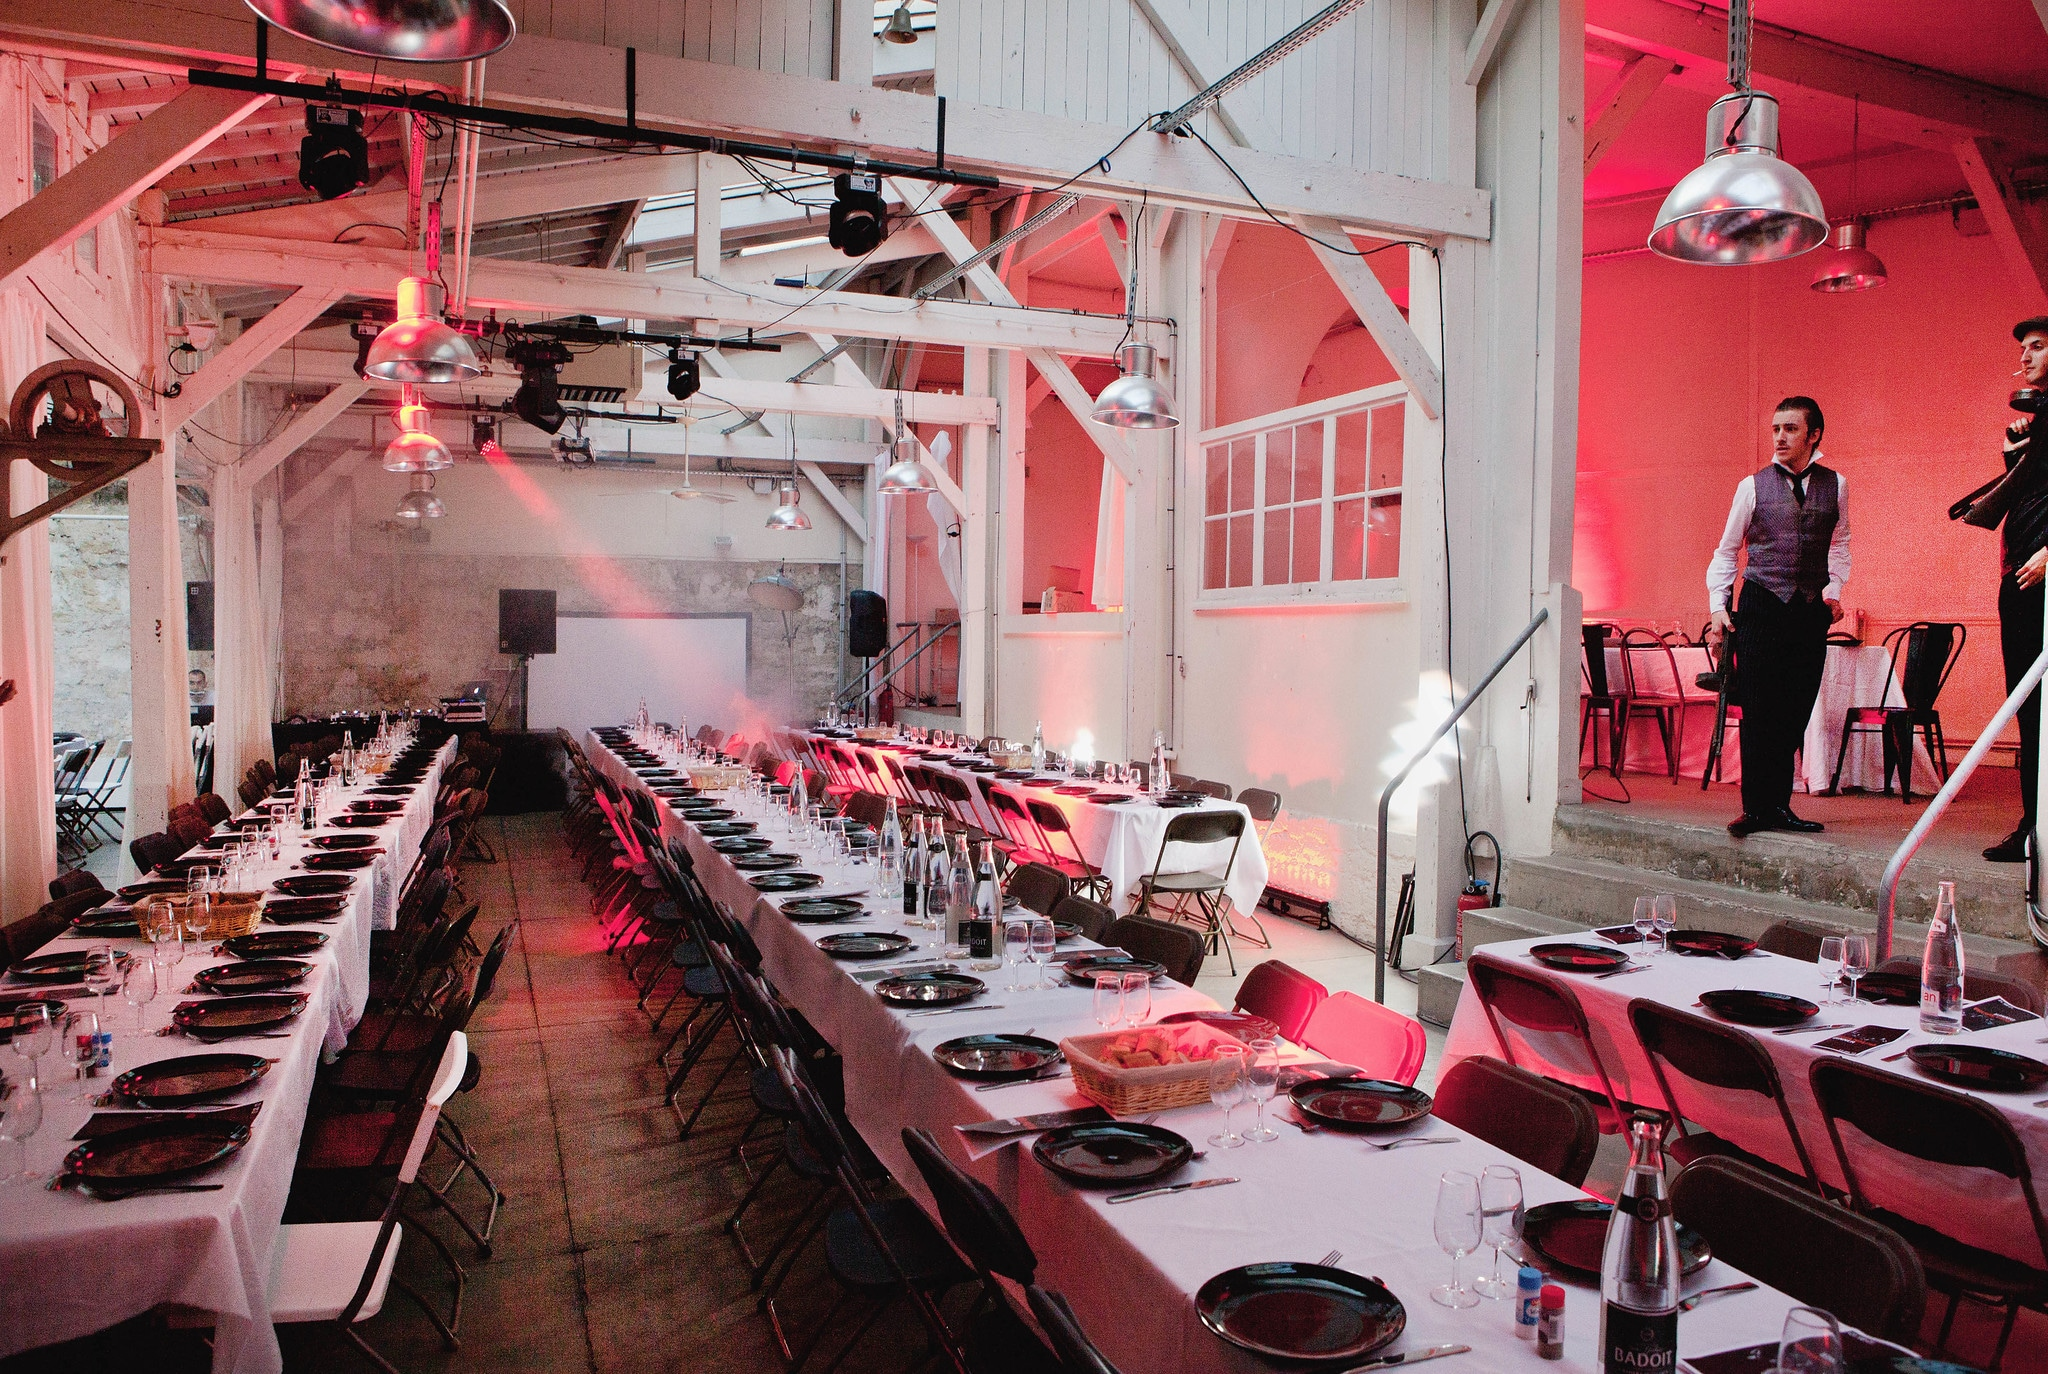 An unusual event: The Cosa Nostra Dinner